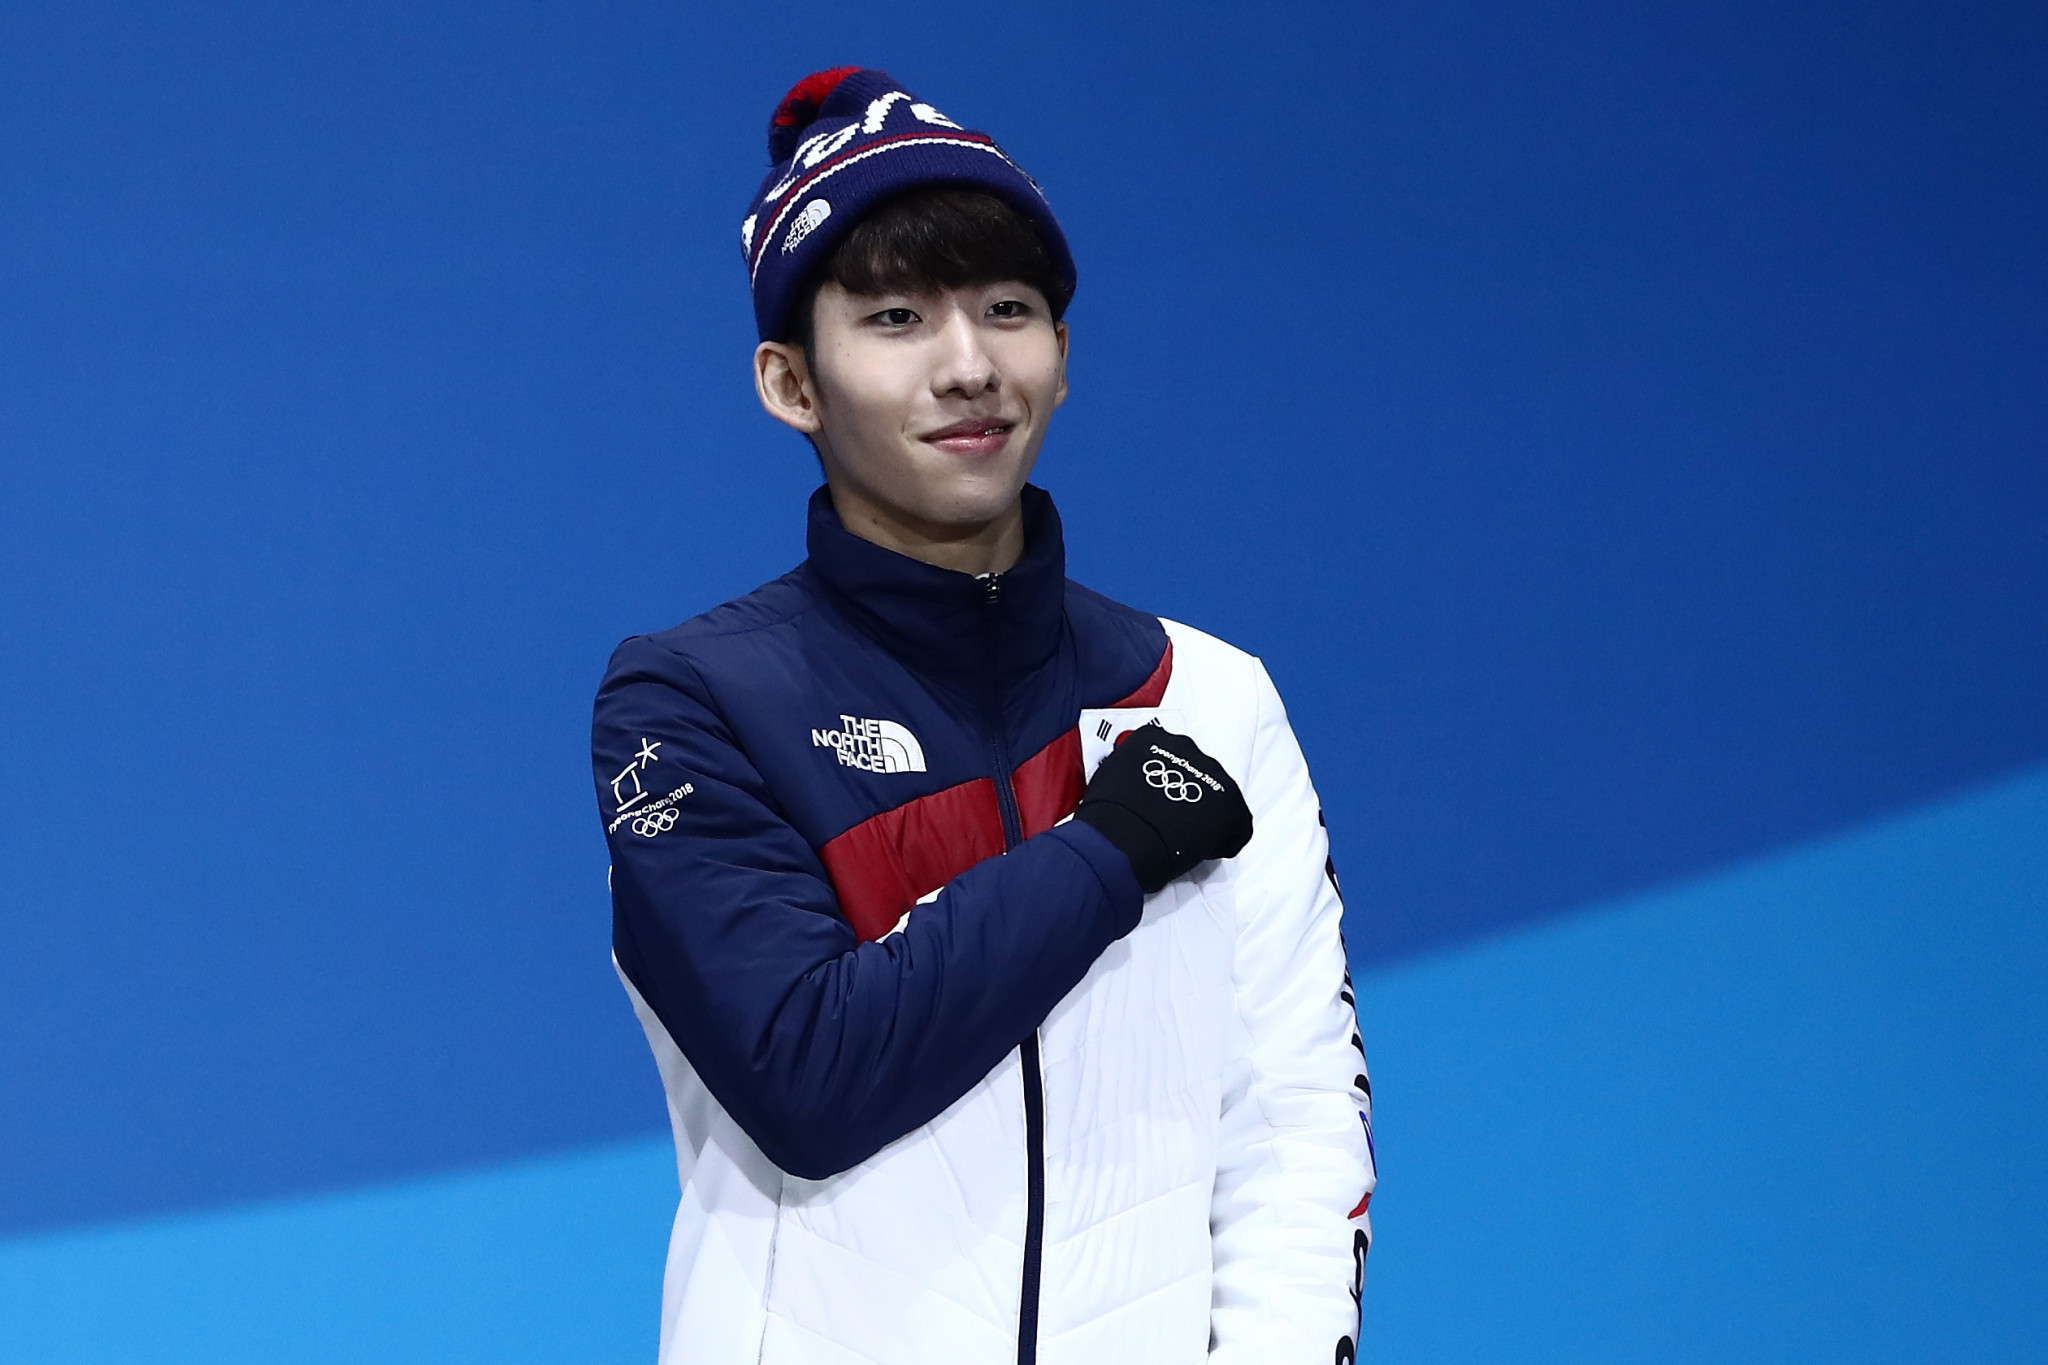 Olympic champion Lim acquitted by Supreme Court in sexual harassment case